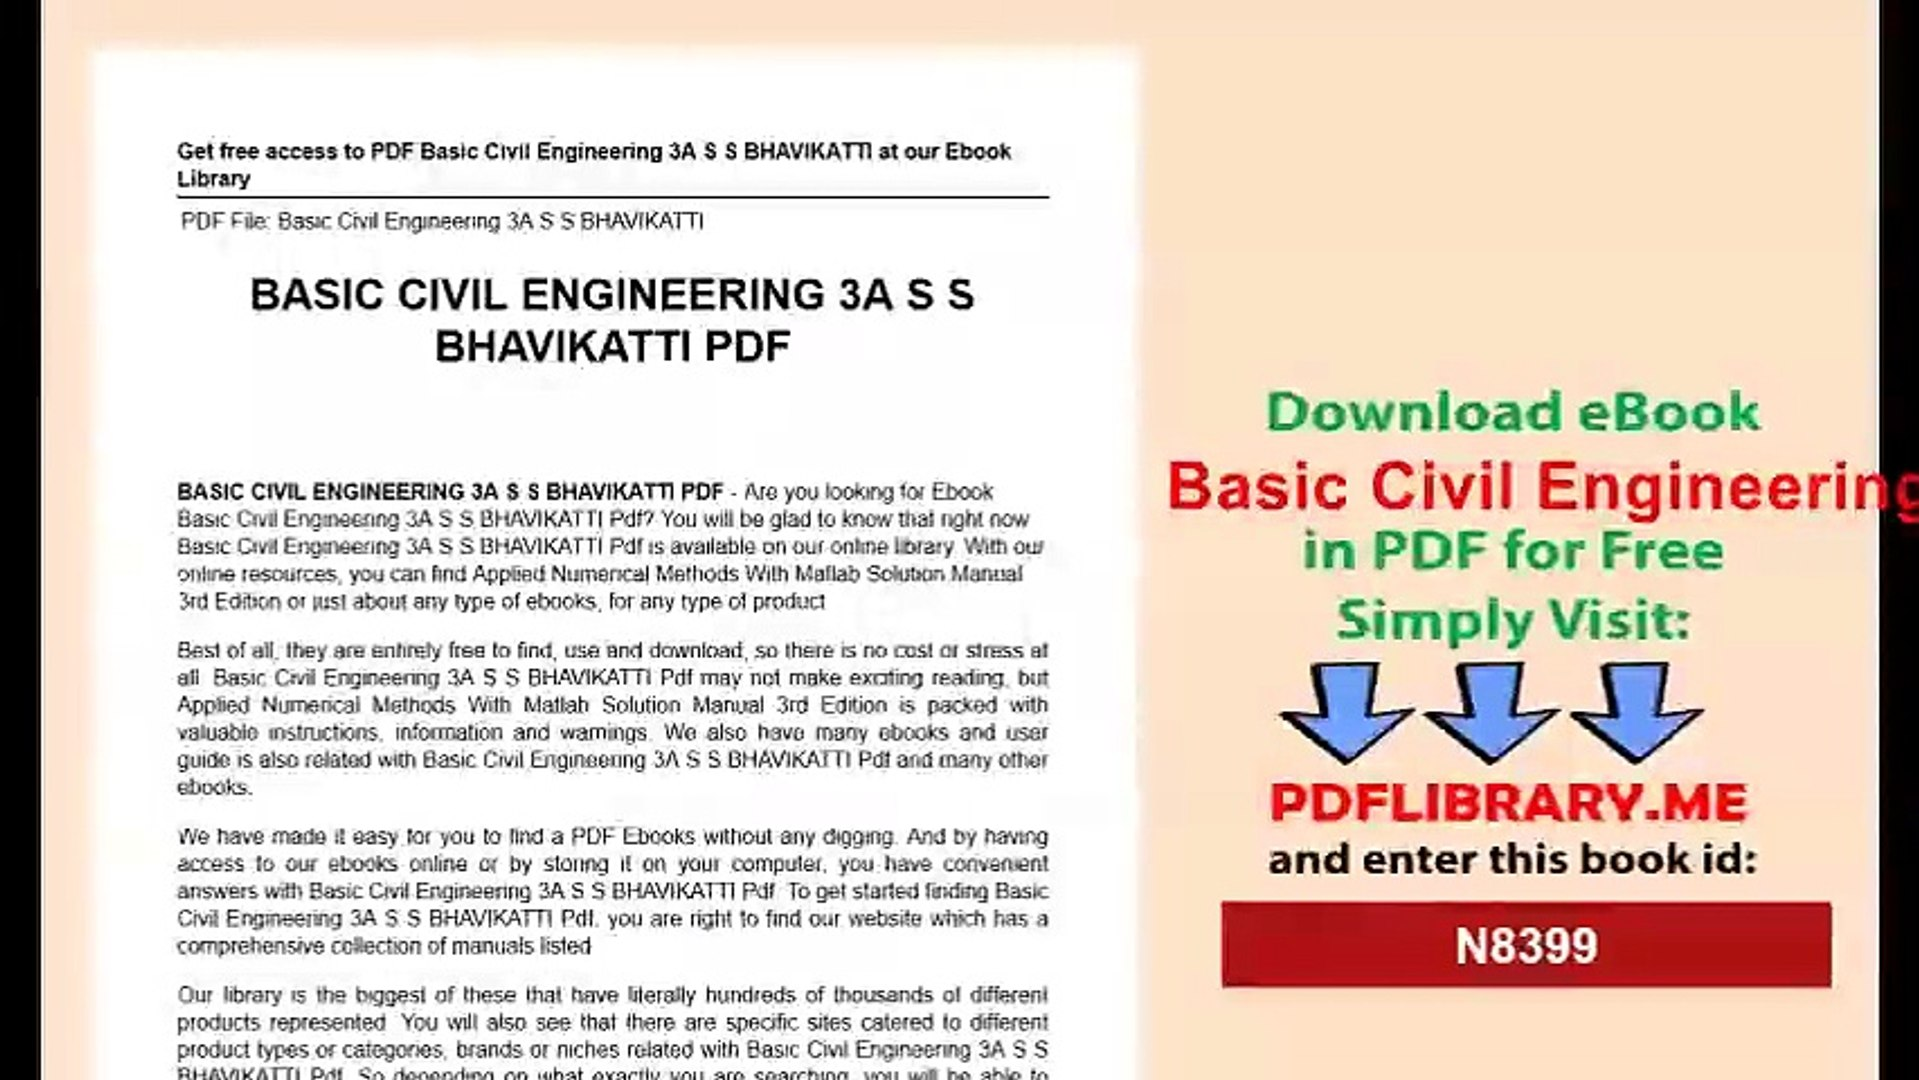 Basic Civil Engineering S S BHAVIKATTI